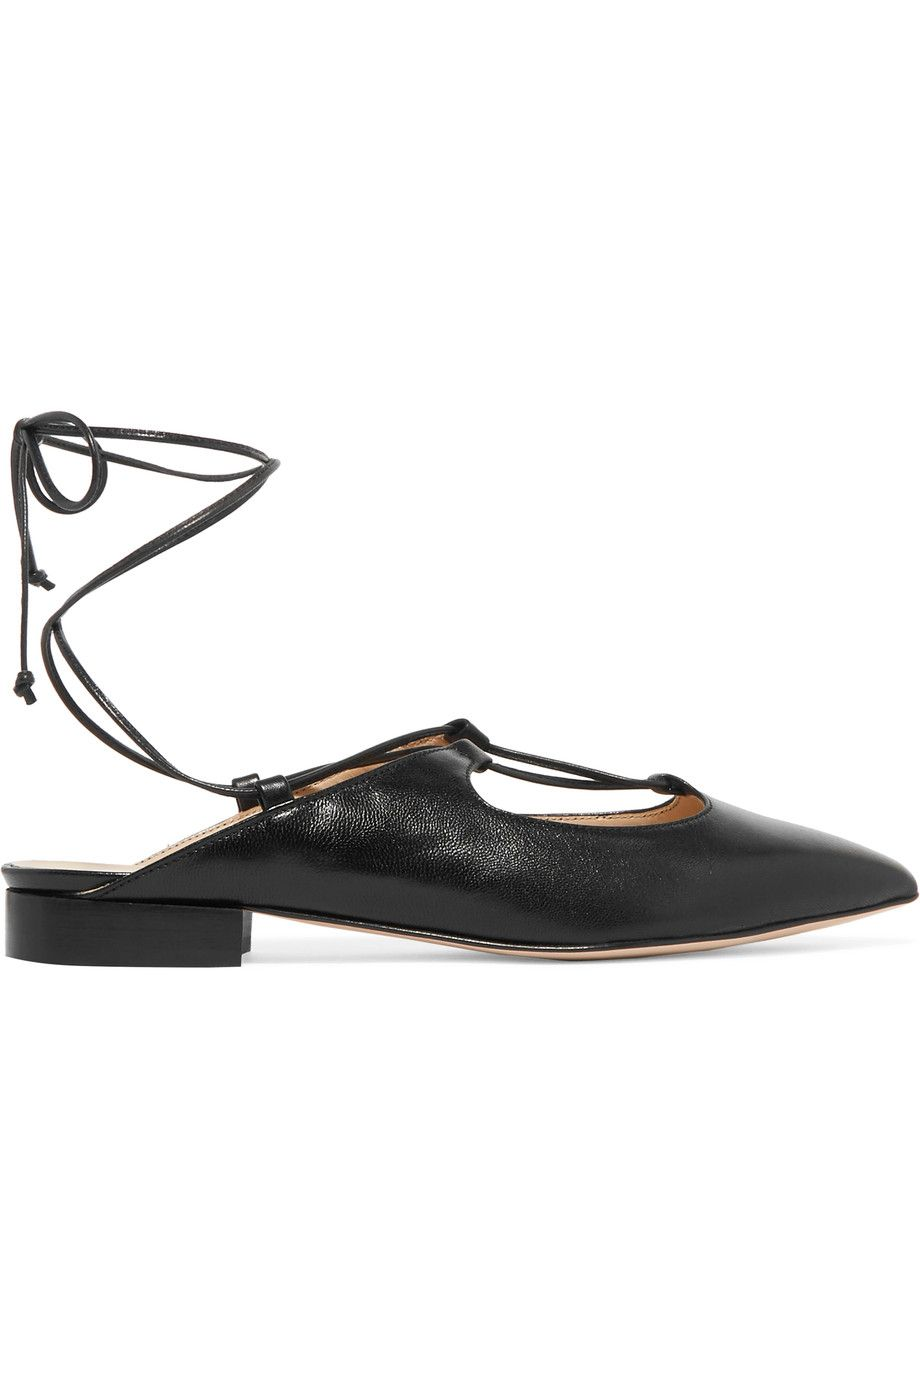 Shop on-sale Iris and Ink Lace-up leather slippers. Browse other discount  designer Flat Shoes & more on The Most Fashionable Fashion Outlet, THE  OUTNET.